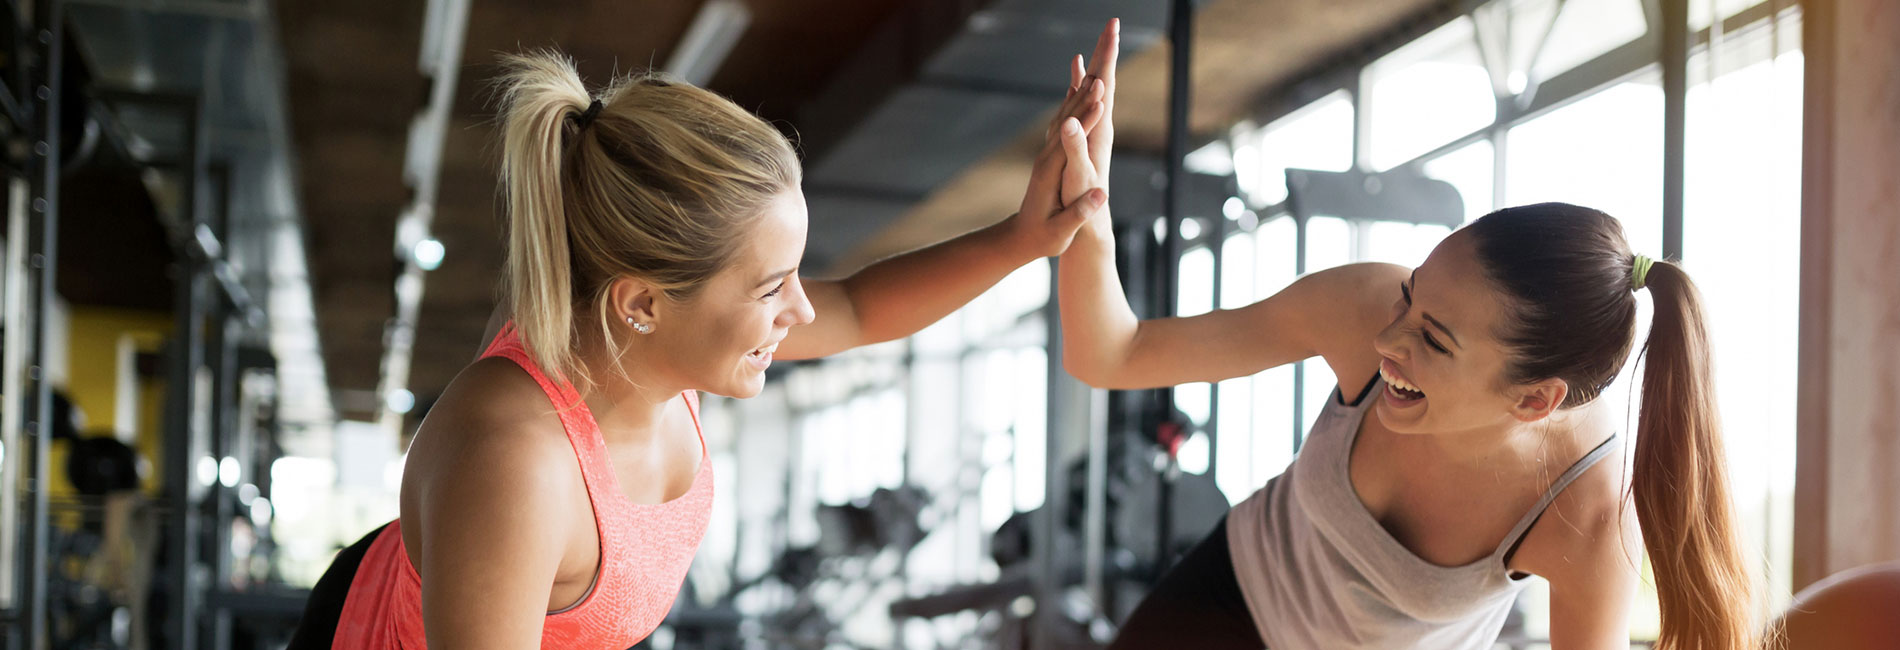 two girls working out high fiving